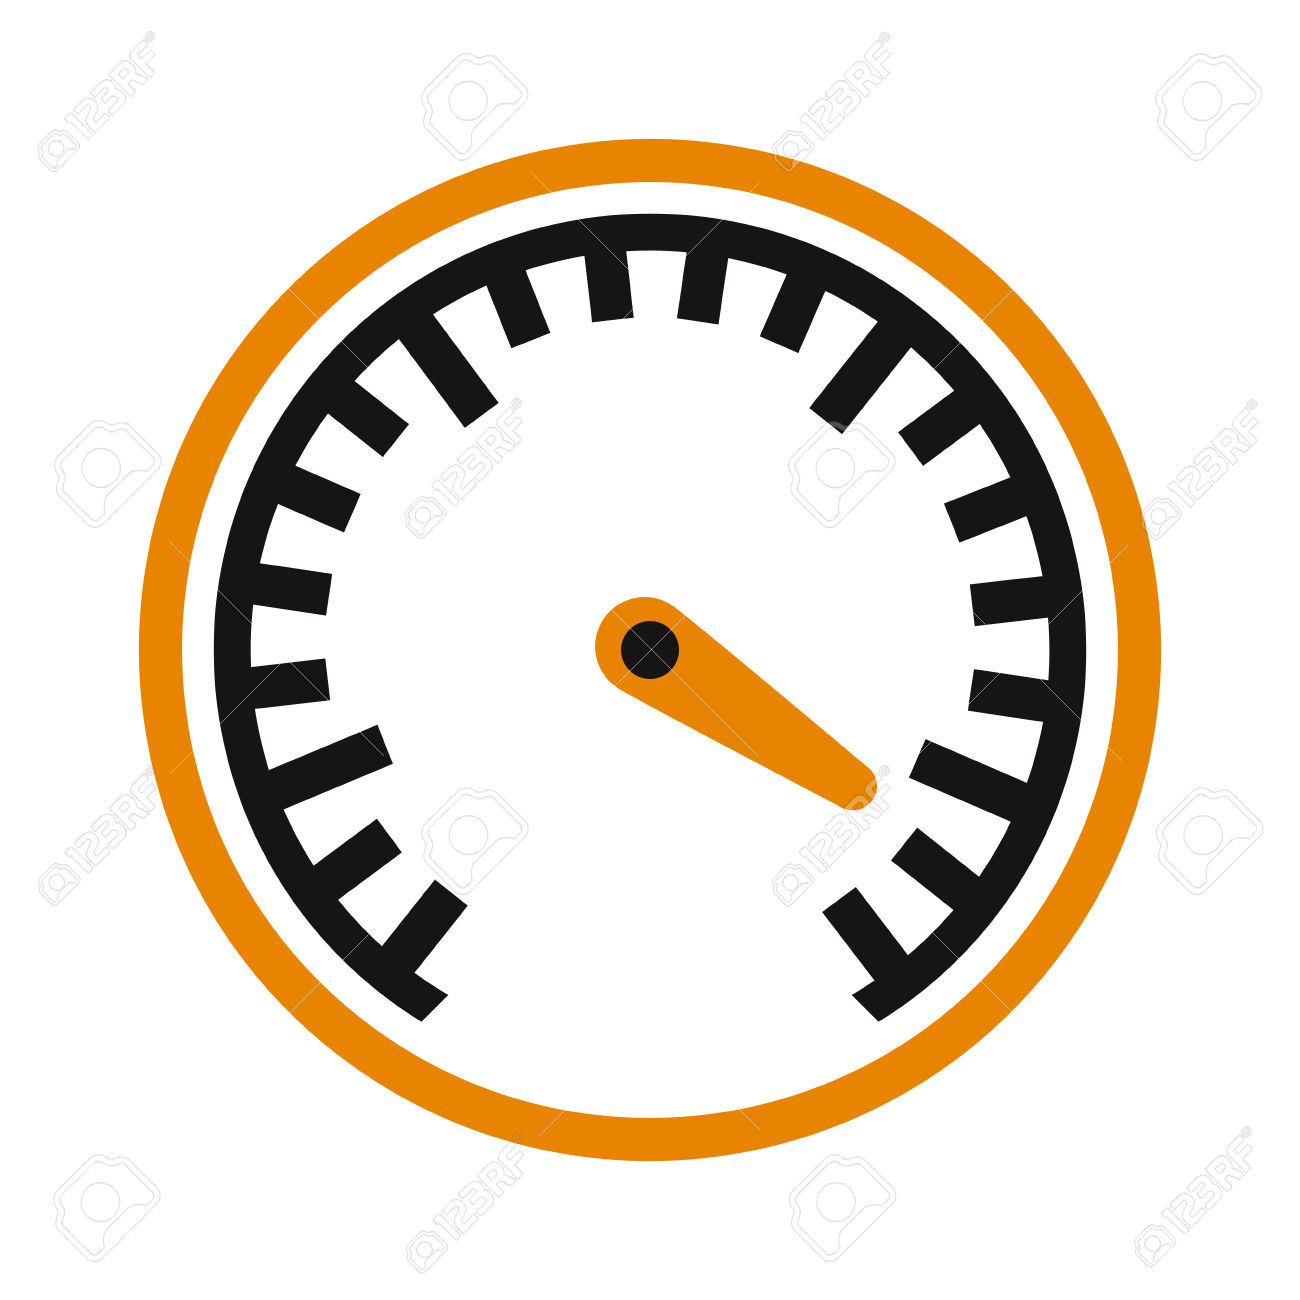 Design Power Speedometer Cars Speed And Cars Element Technology.